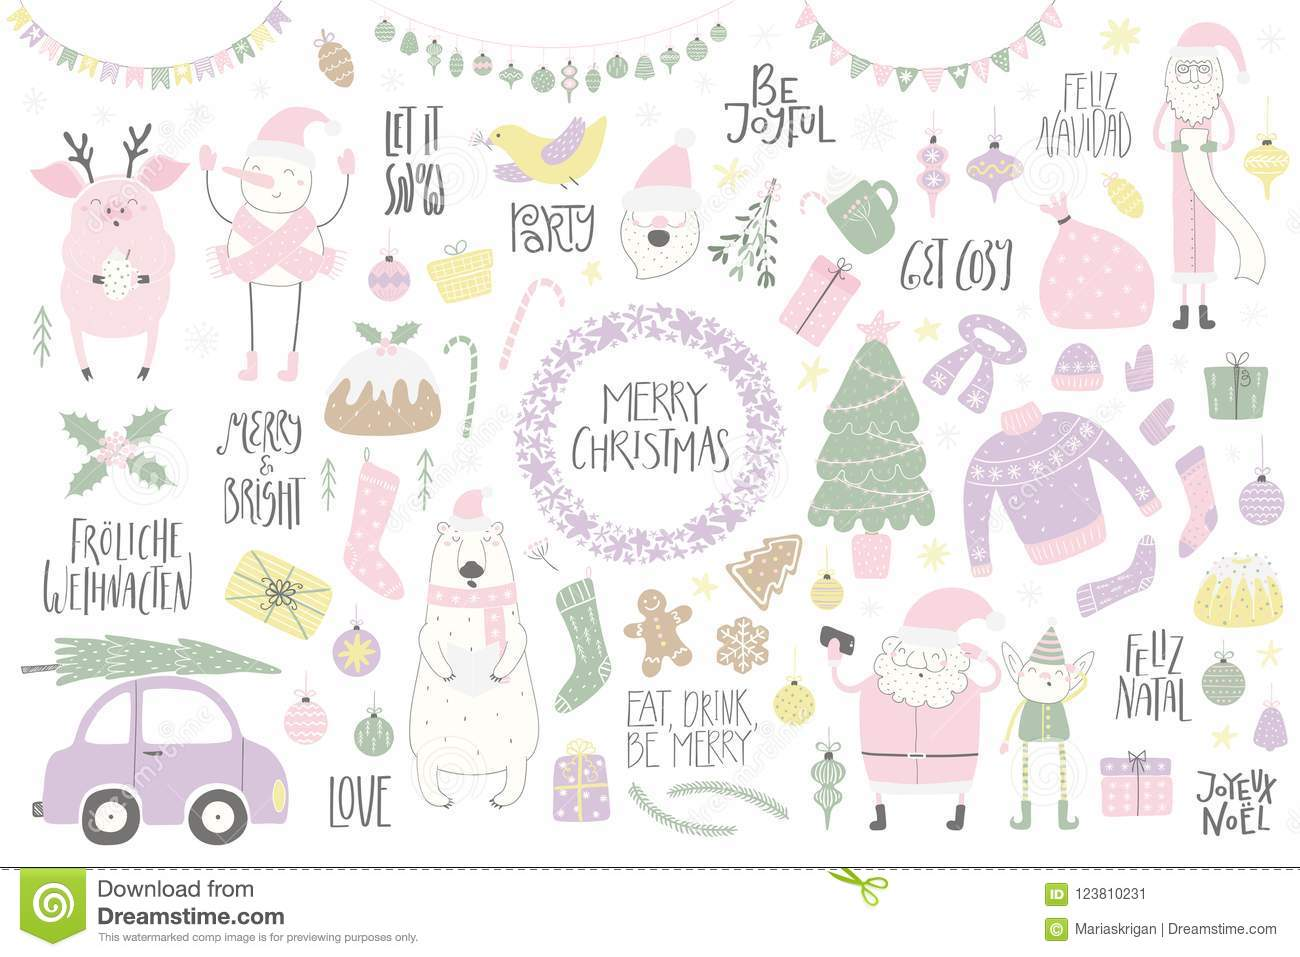 Big Christmas Set With Funny Characters Polar Bear Pig Santa Elf Snowman Tree Food Quotes Isolated Objects On White Hand Drawn Vector Illustration